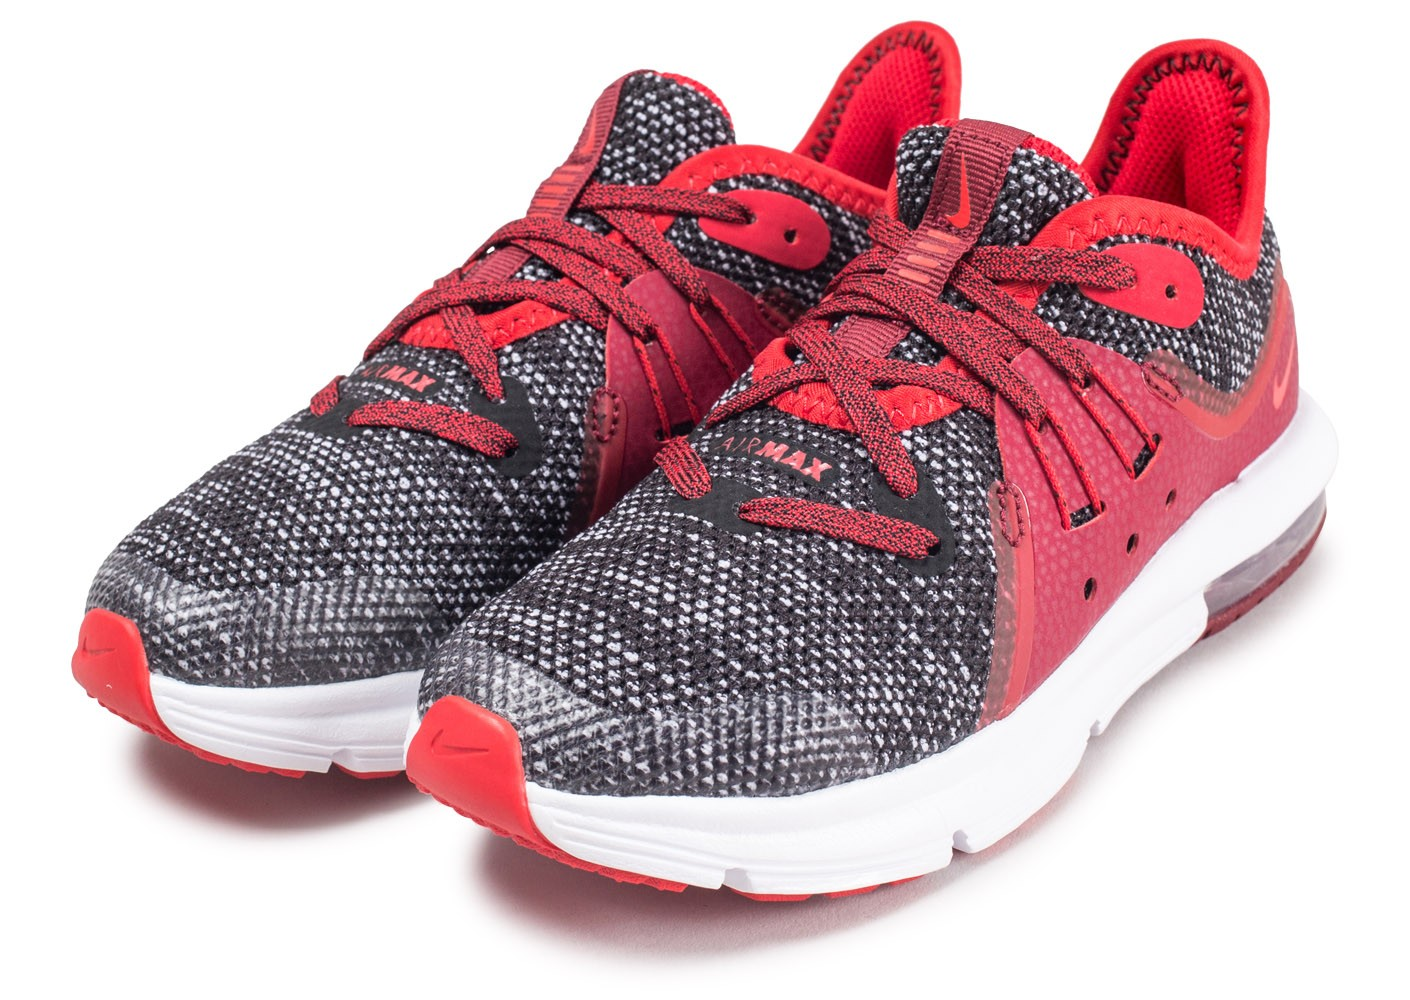 Nike Air Max Sequent 3 Enfant rouge Chaussures Baskets